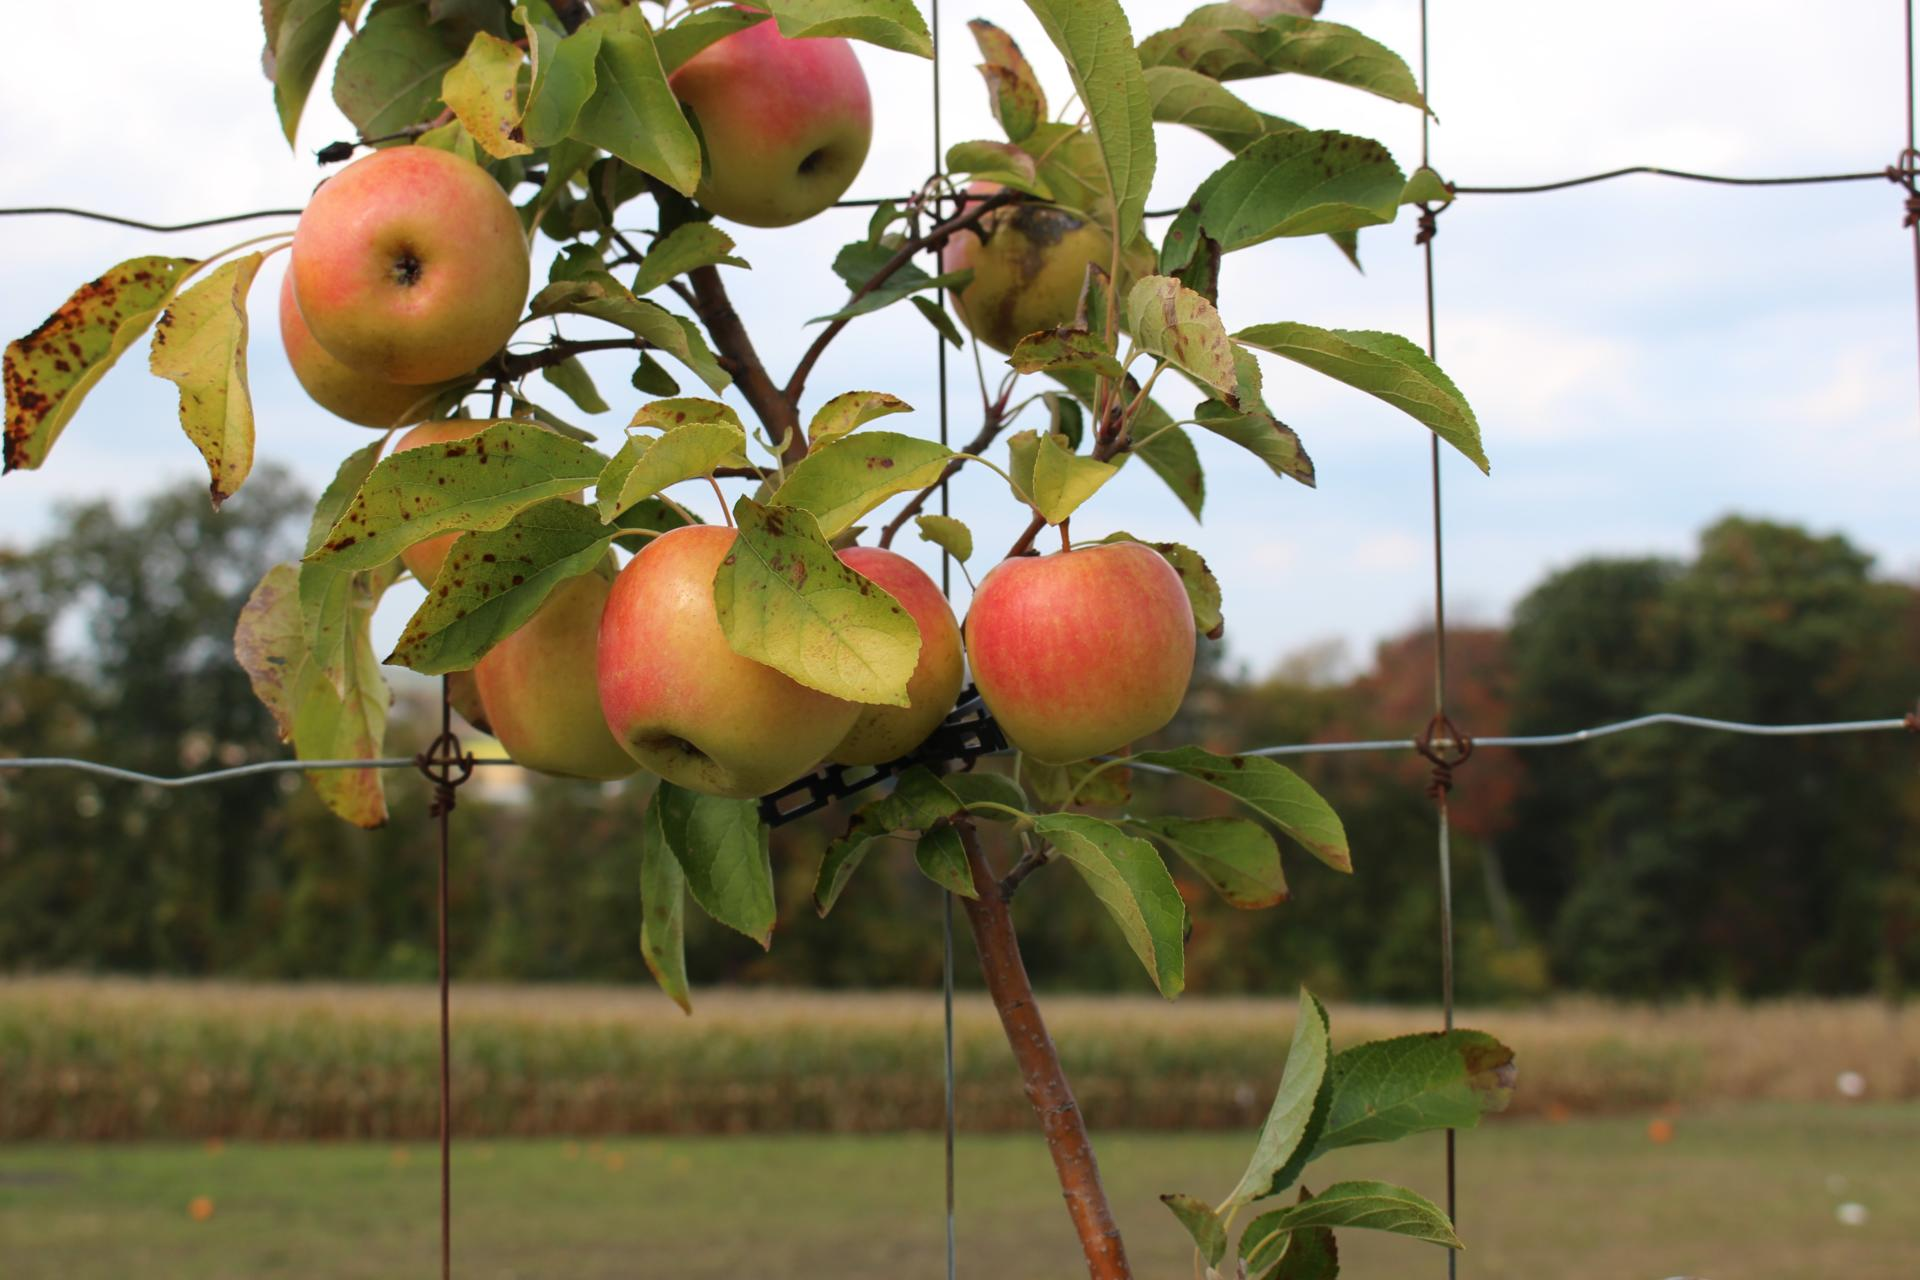 LOCAL: Apple Picking and Pumpkin Patching at Riamede Farm by popular New Jersey blogger What's For Dinner Esq.